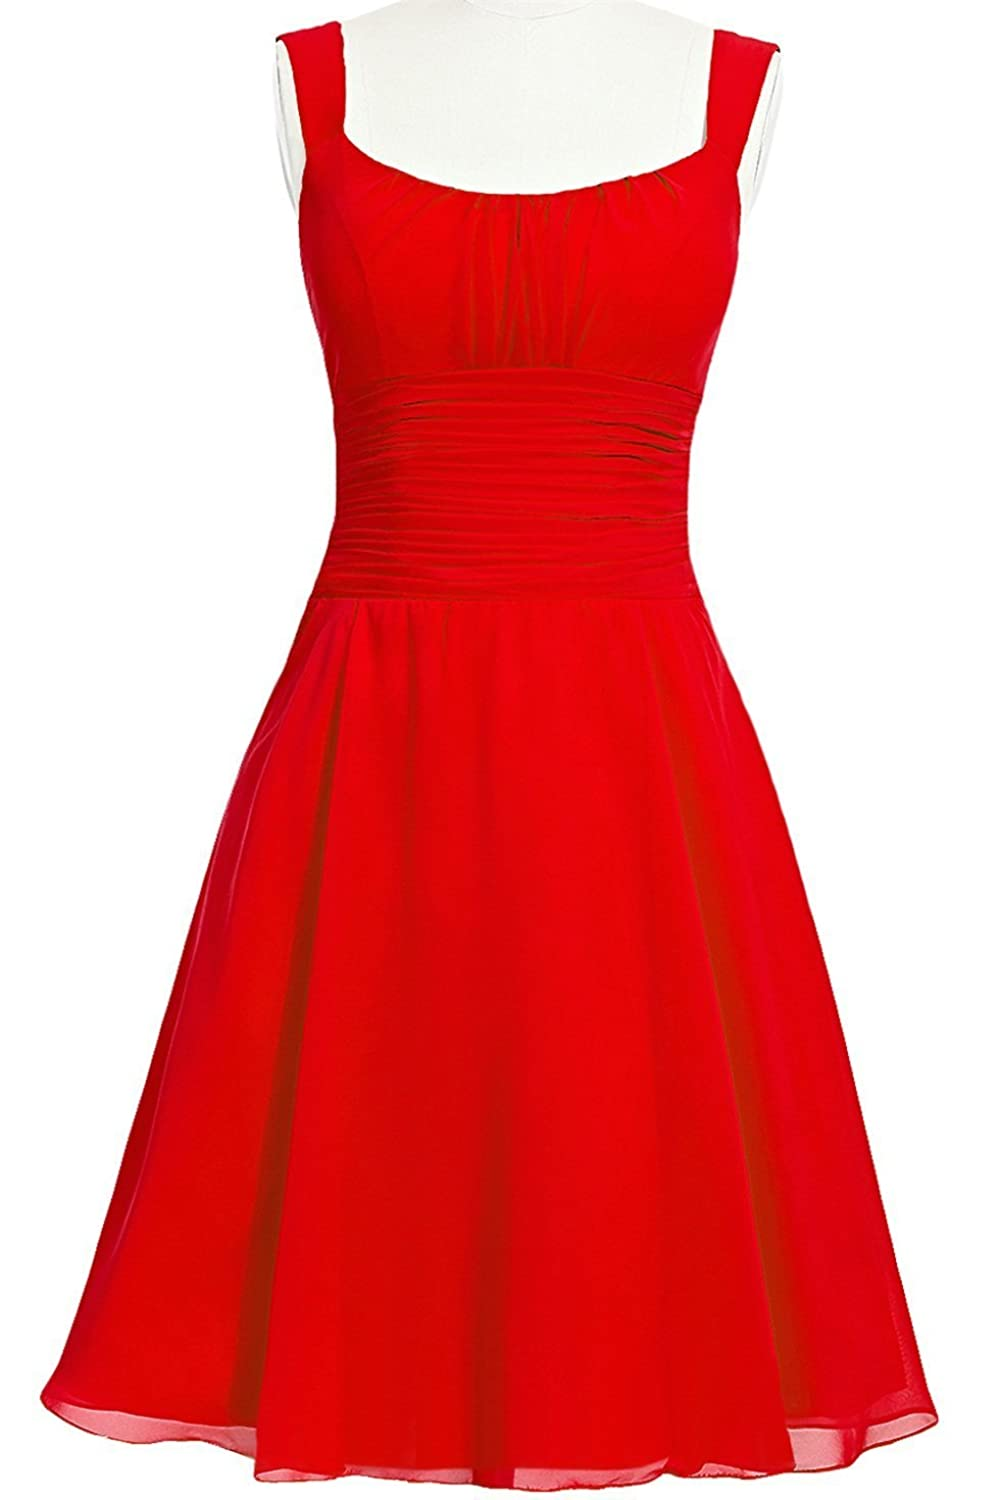 MittyDressesWomens Evening Homecoming Prom Party Cocktail Dress Size 24W US Red